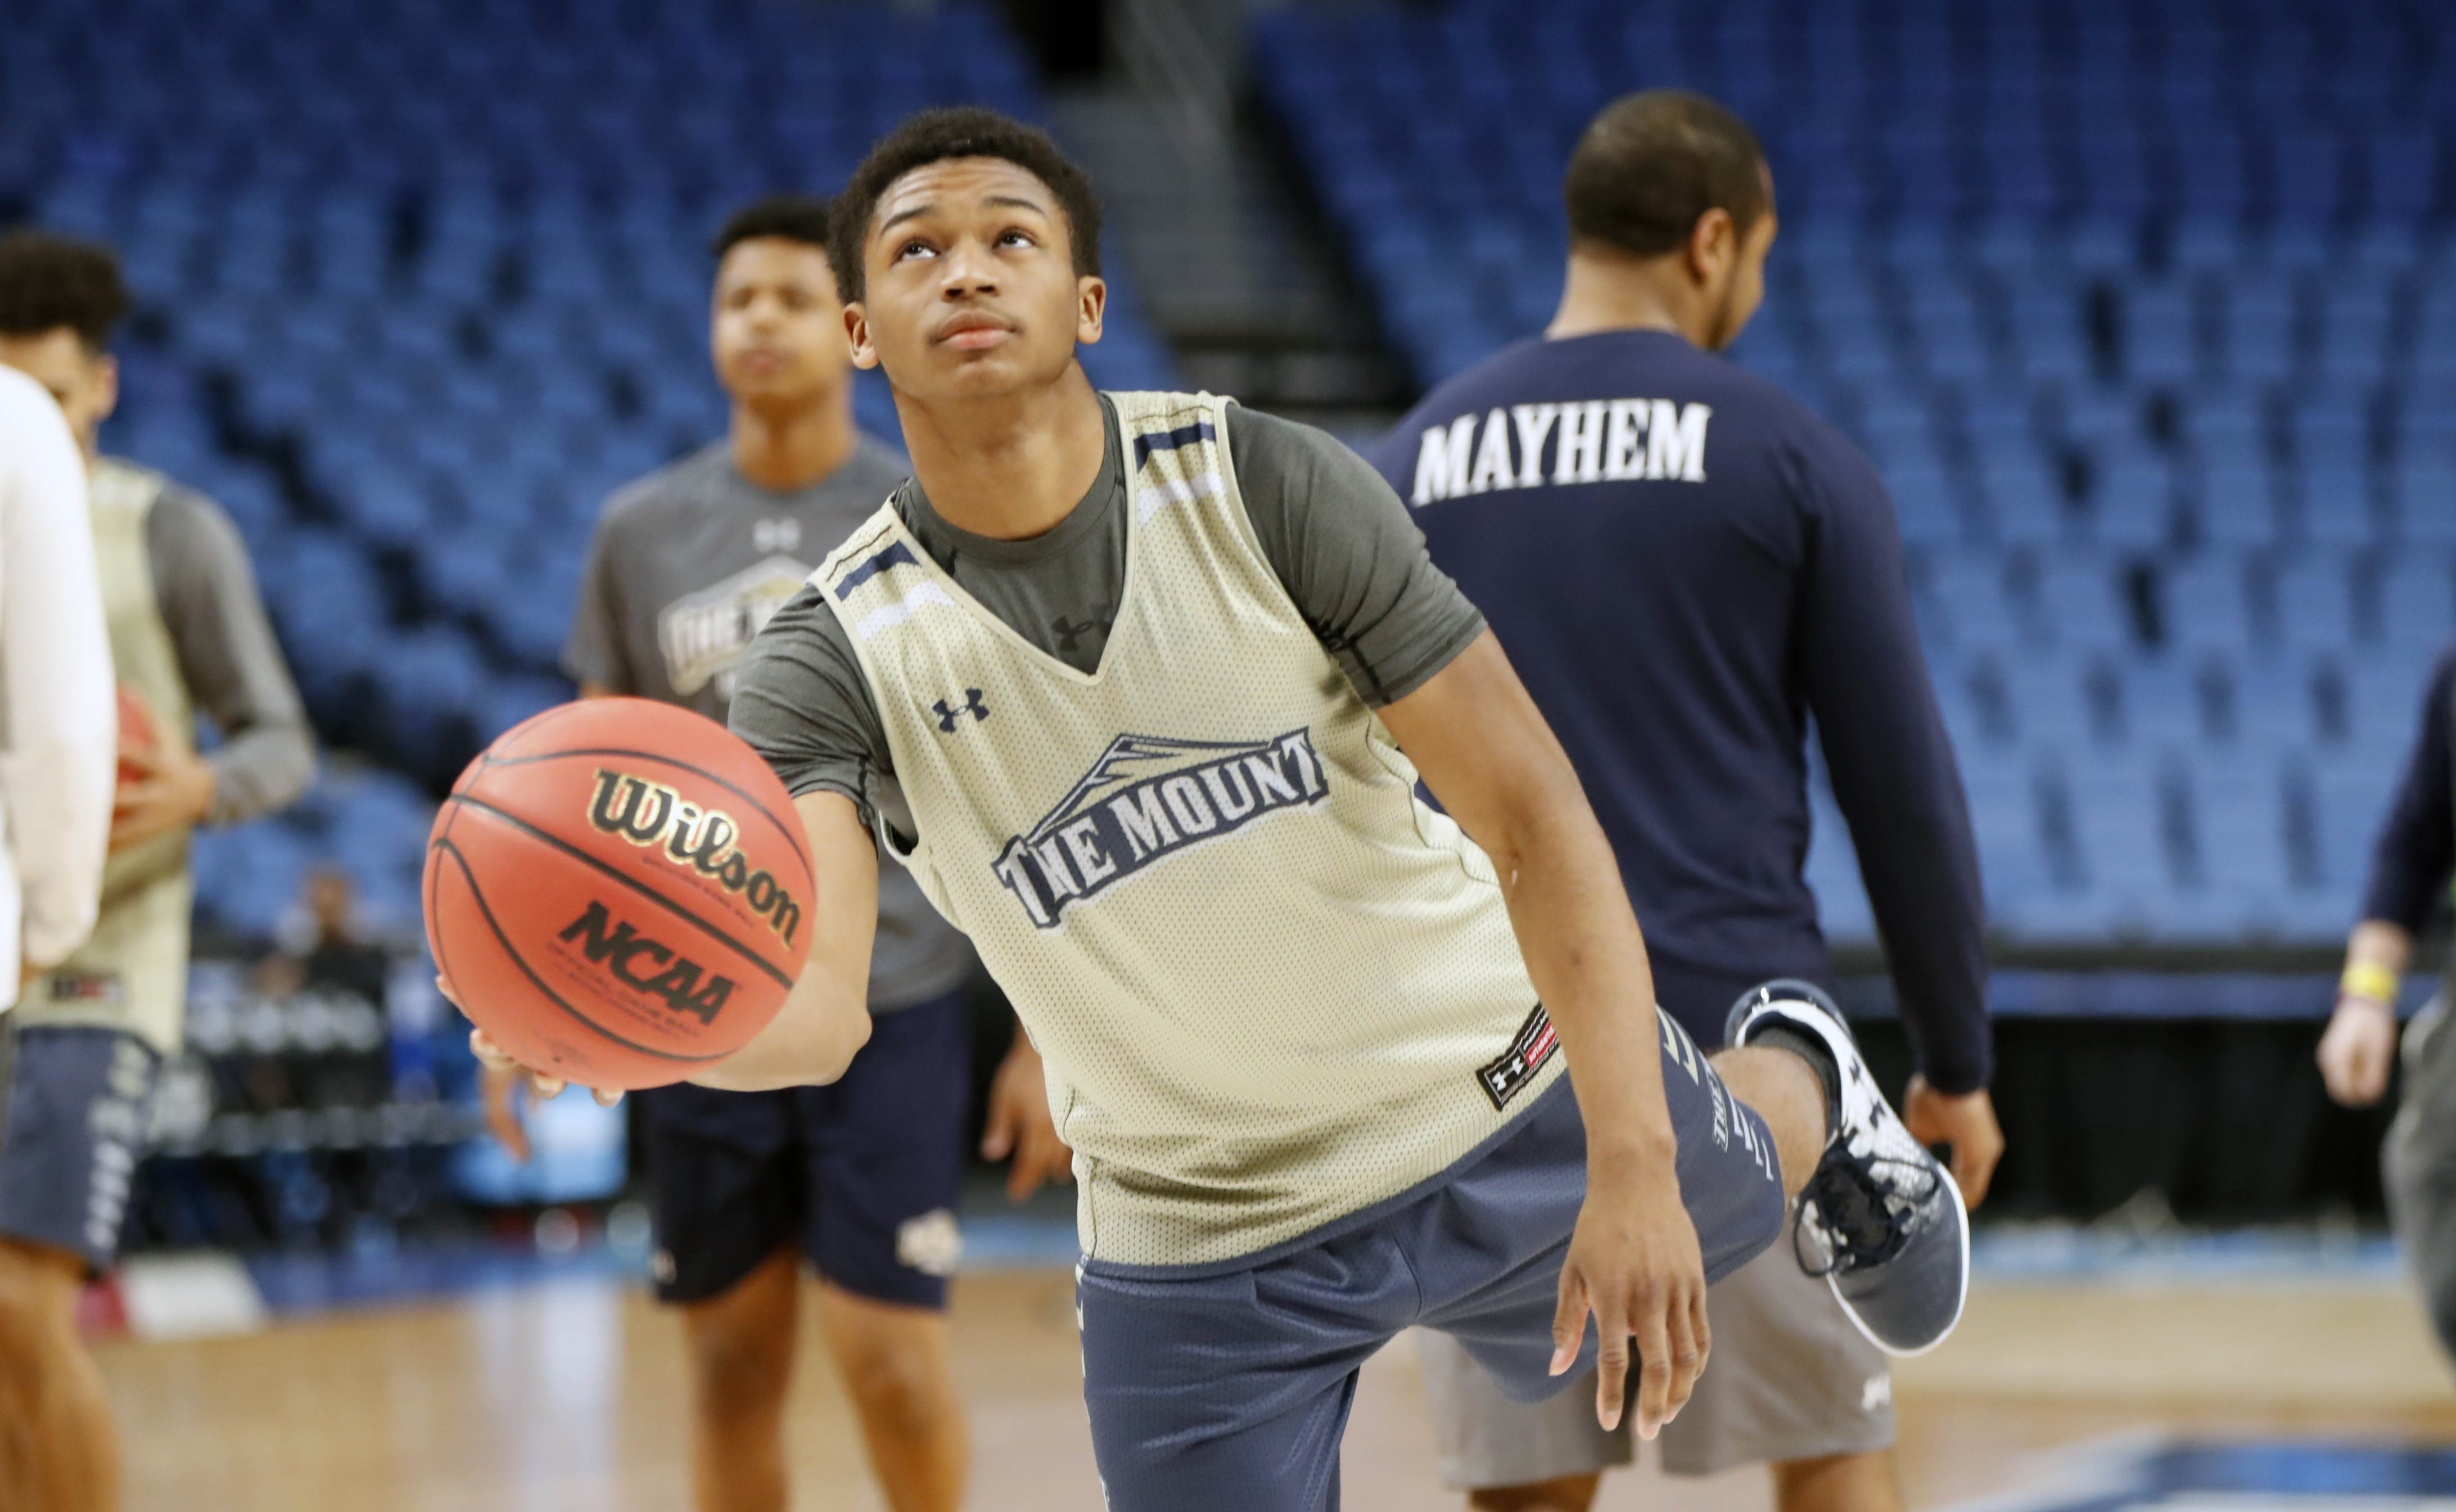 Junior Robinson has put himself in the national spotlight after his performance for Mount St. Mary's in a First Four victory Tuesday. (Harry Scull Jr./Buffalo News)